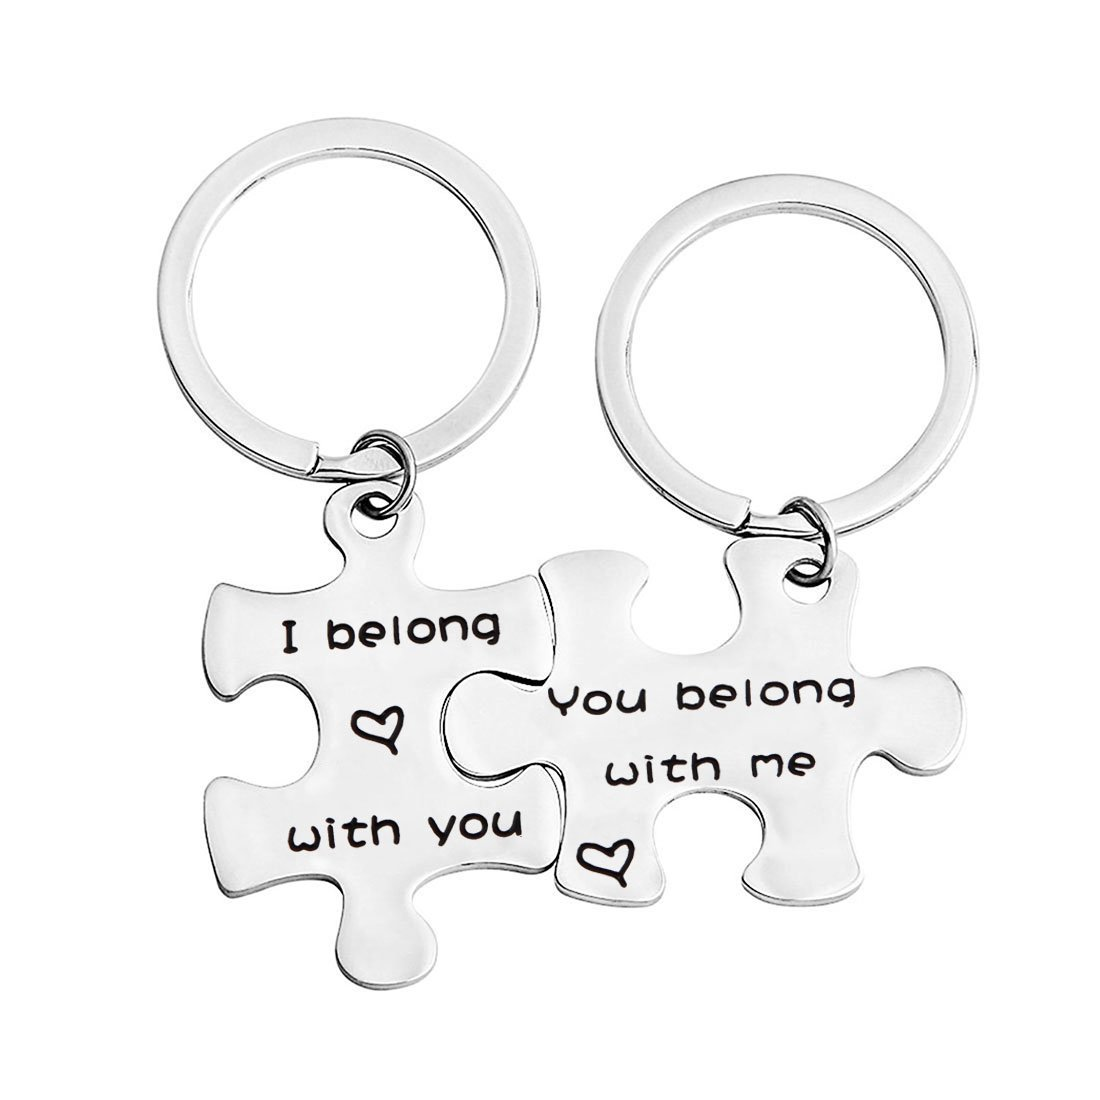 bobauna Couple Lover Family Puzzle Keychain Set of 2 I Belong with You You Belong with Me Valentine Gift